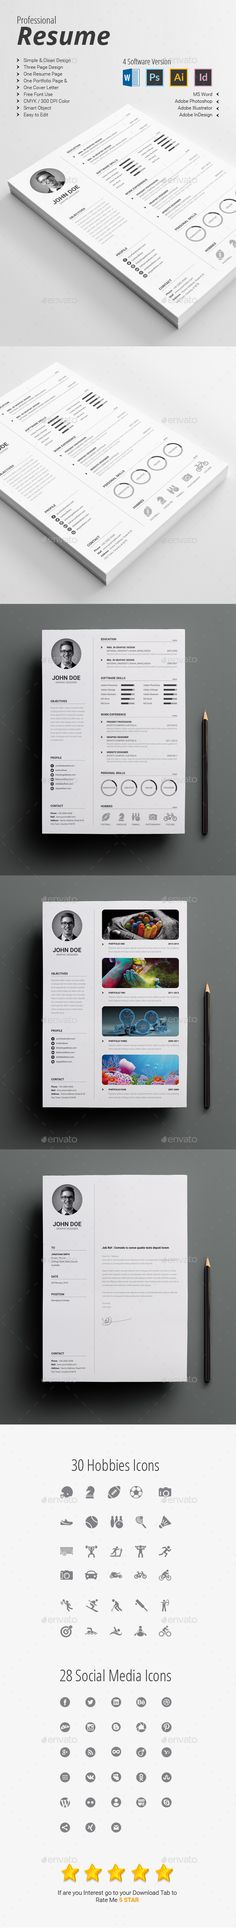 Simple Design Focusing On Experience Which Includes A Single Page